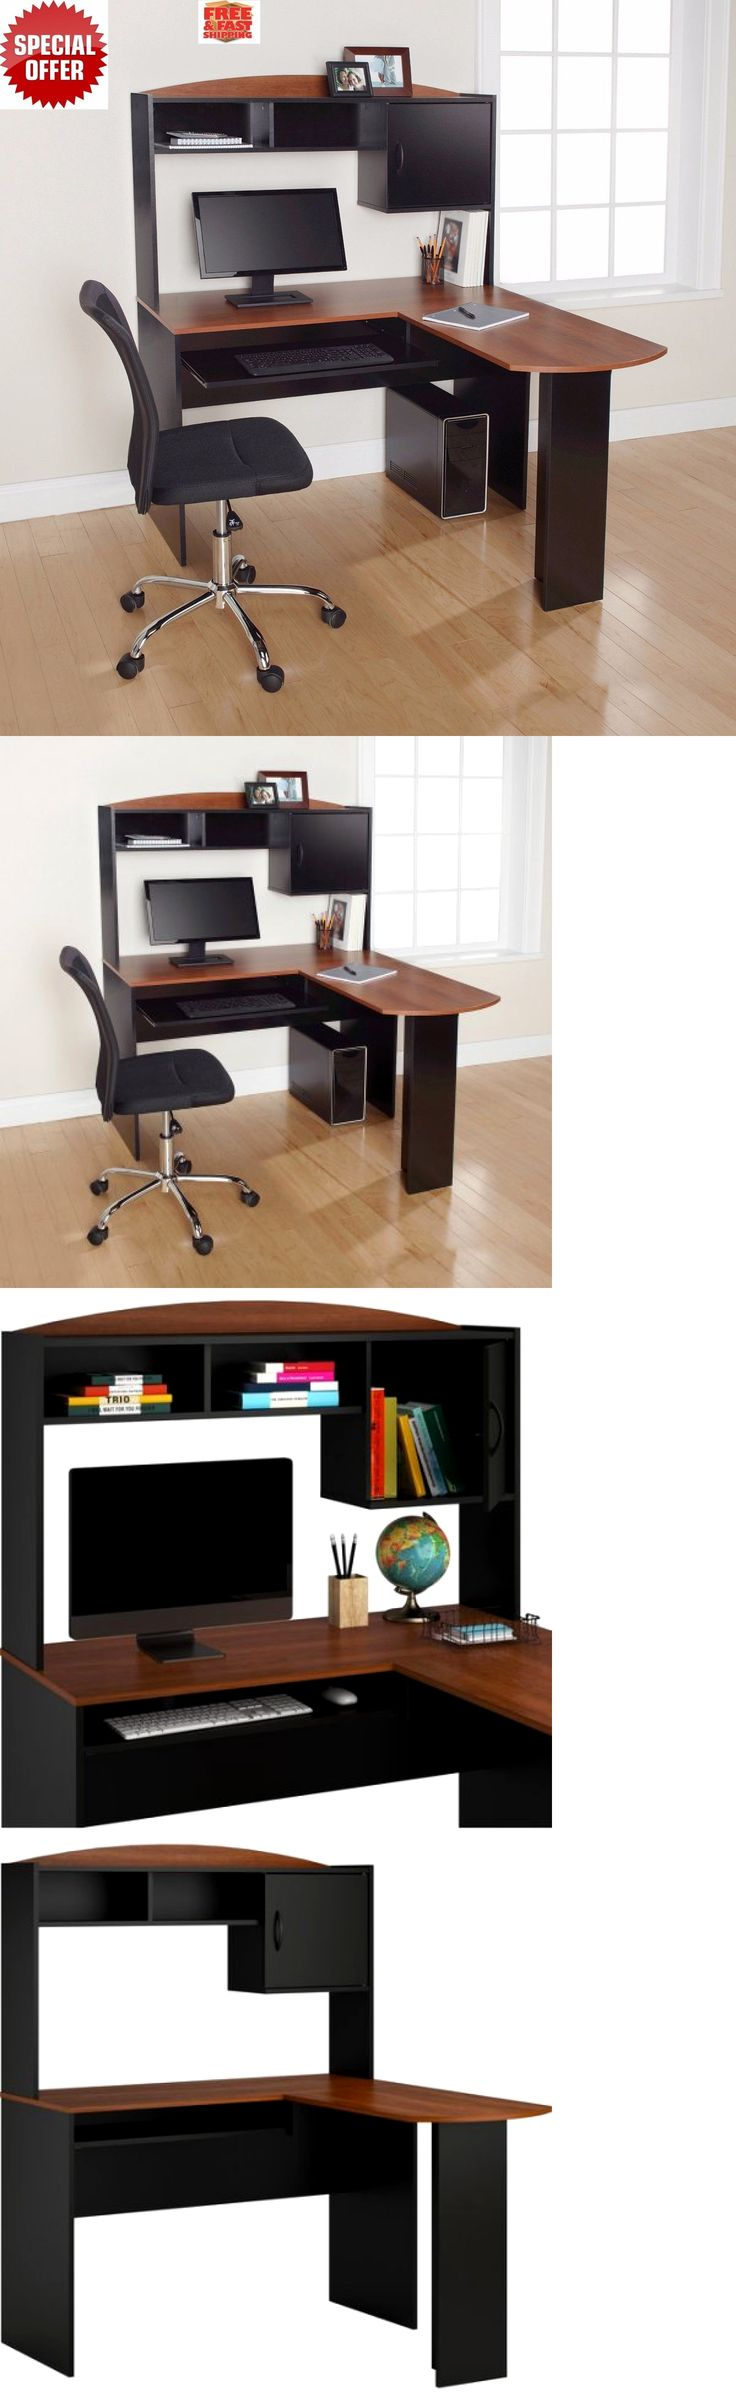 Office Furniture: Corner Computer Desk Workstation Laptop Home Office L-Shaped Student Furniture -> BUY IT NOW ONLY: $119.11 on eBay!